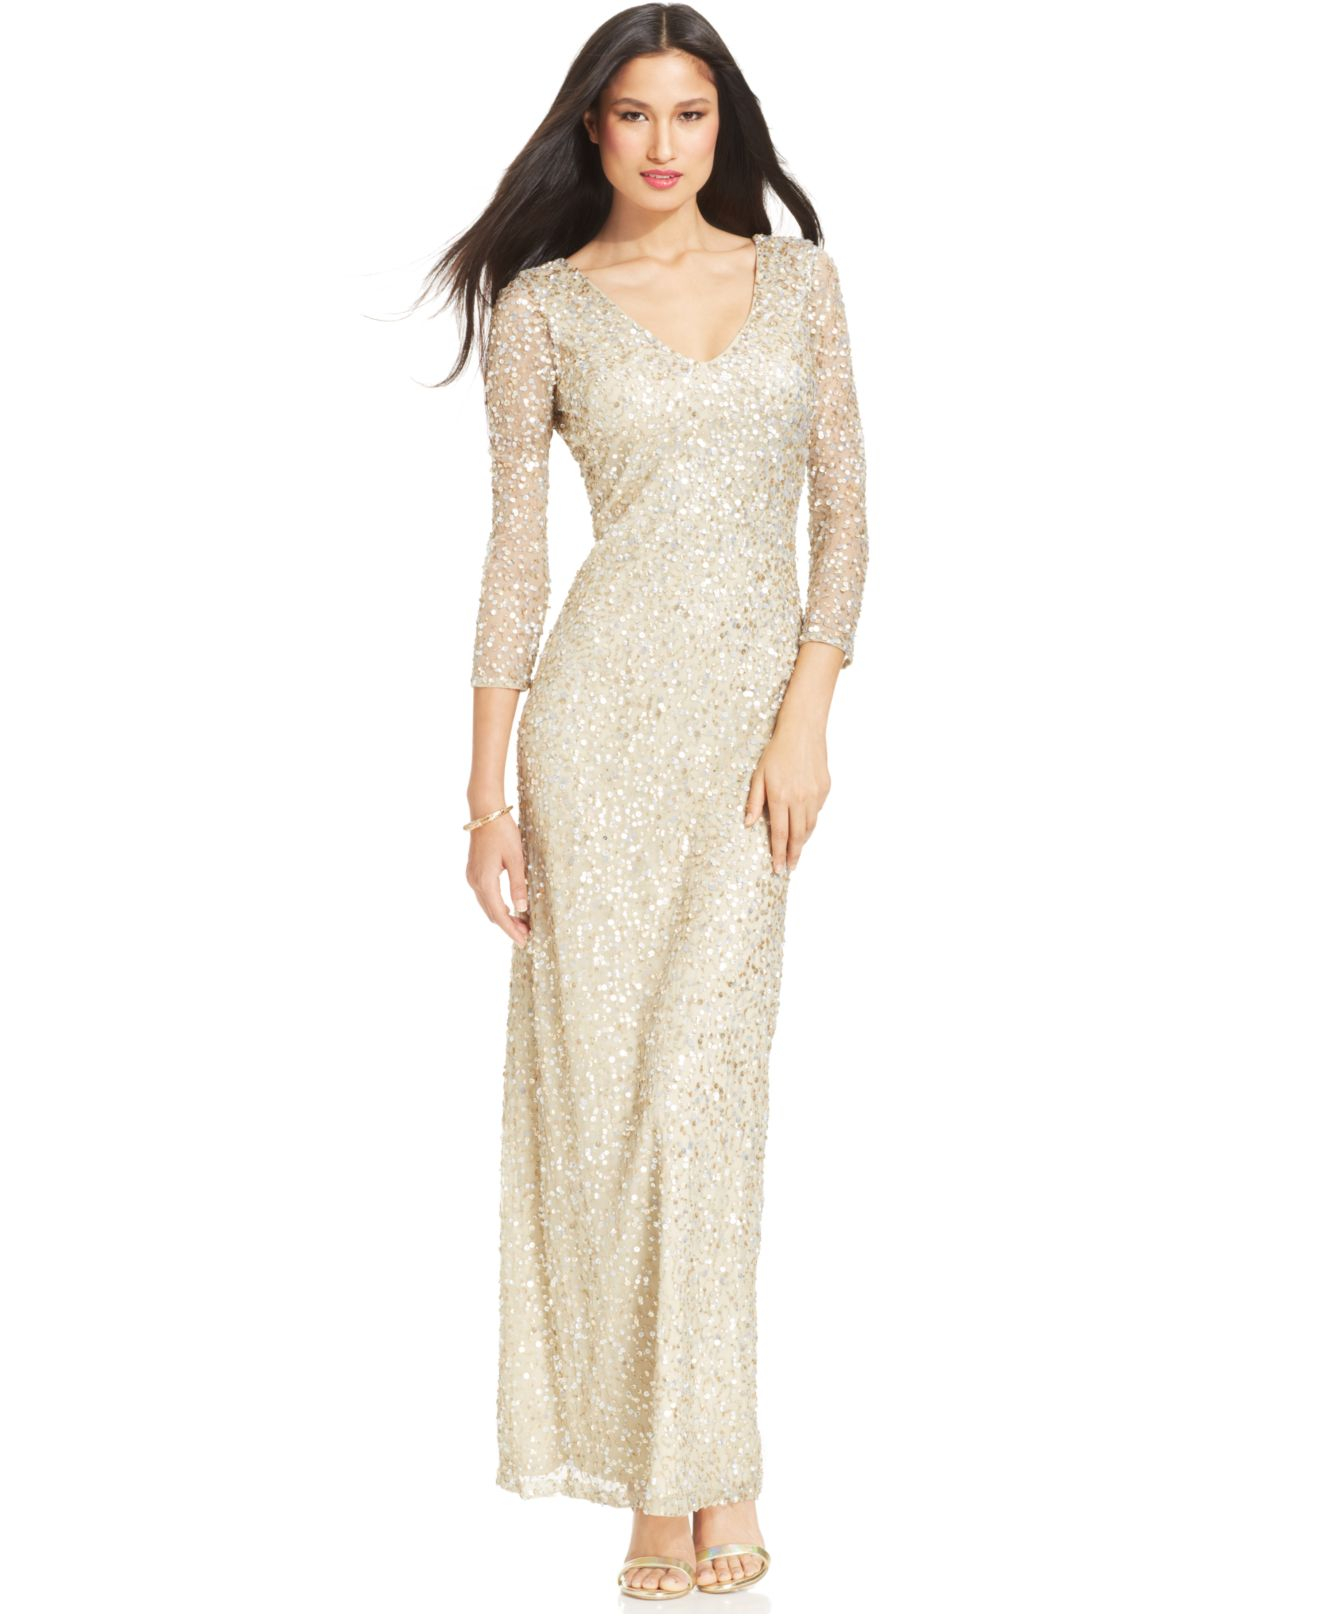 Lyst - Js Collections Three-Quarter-Sleeve Sequin Gown in Metallic